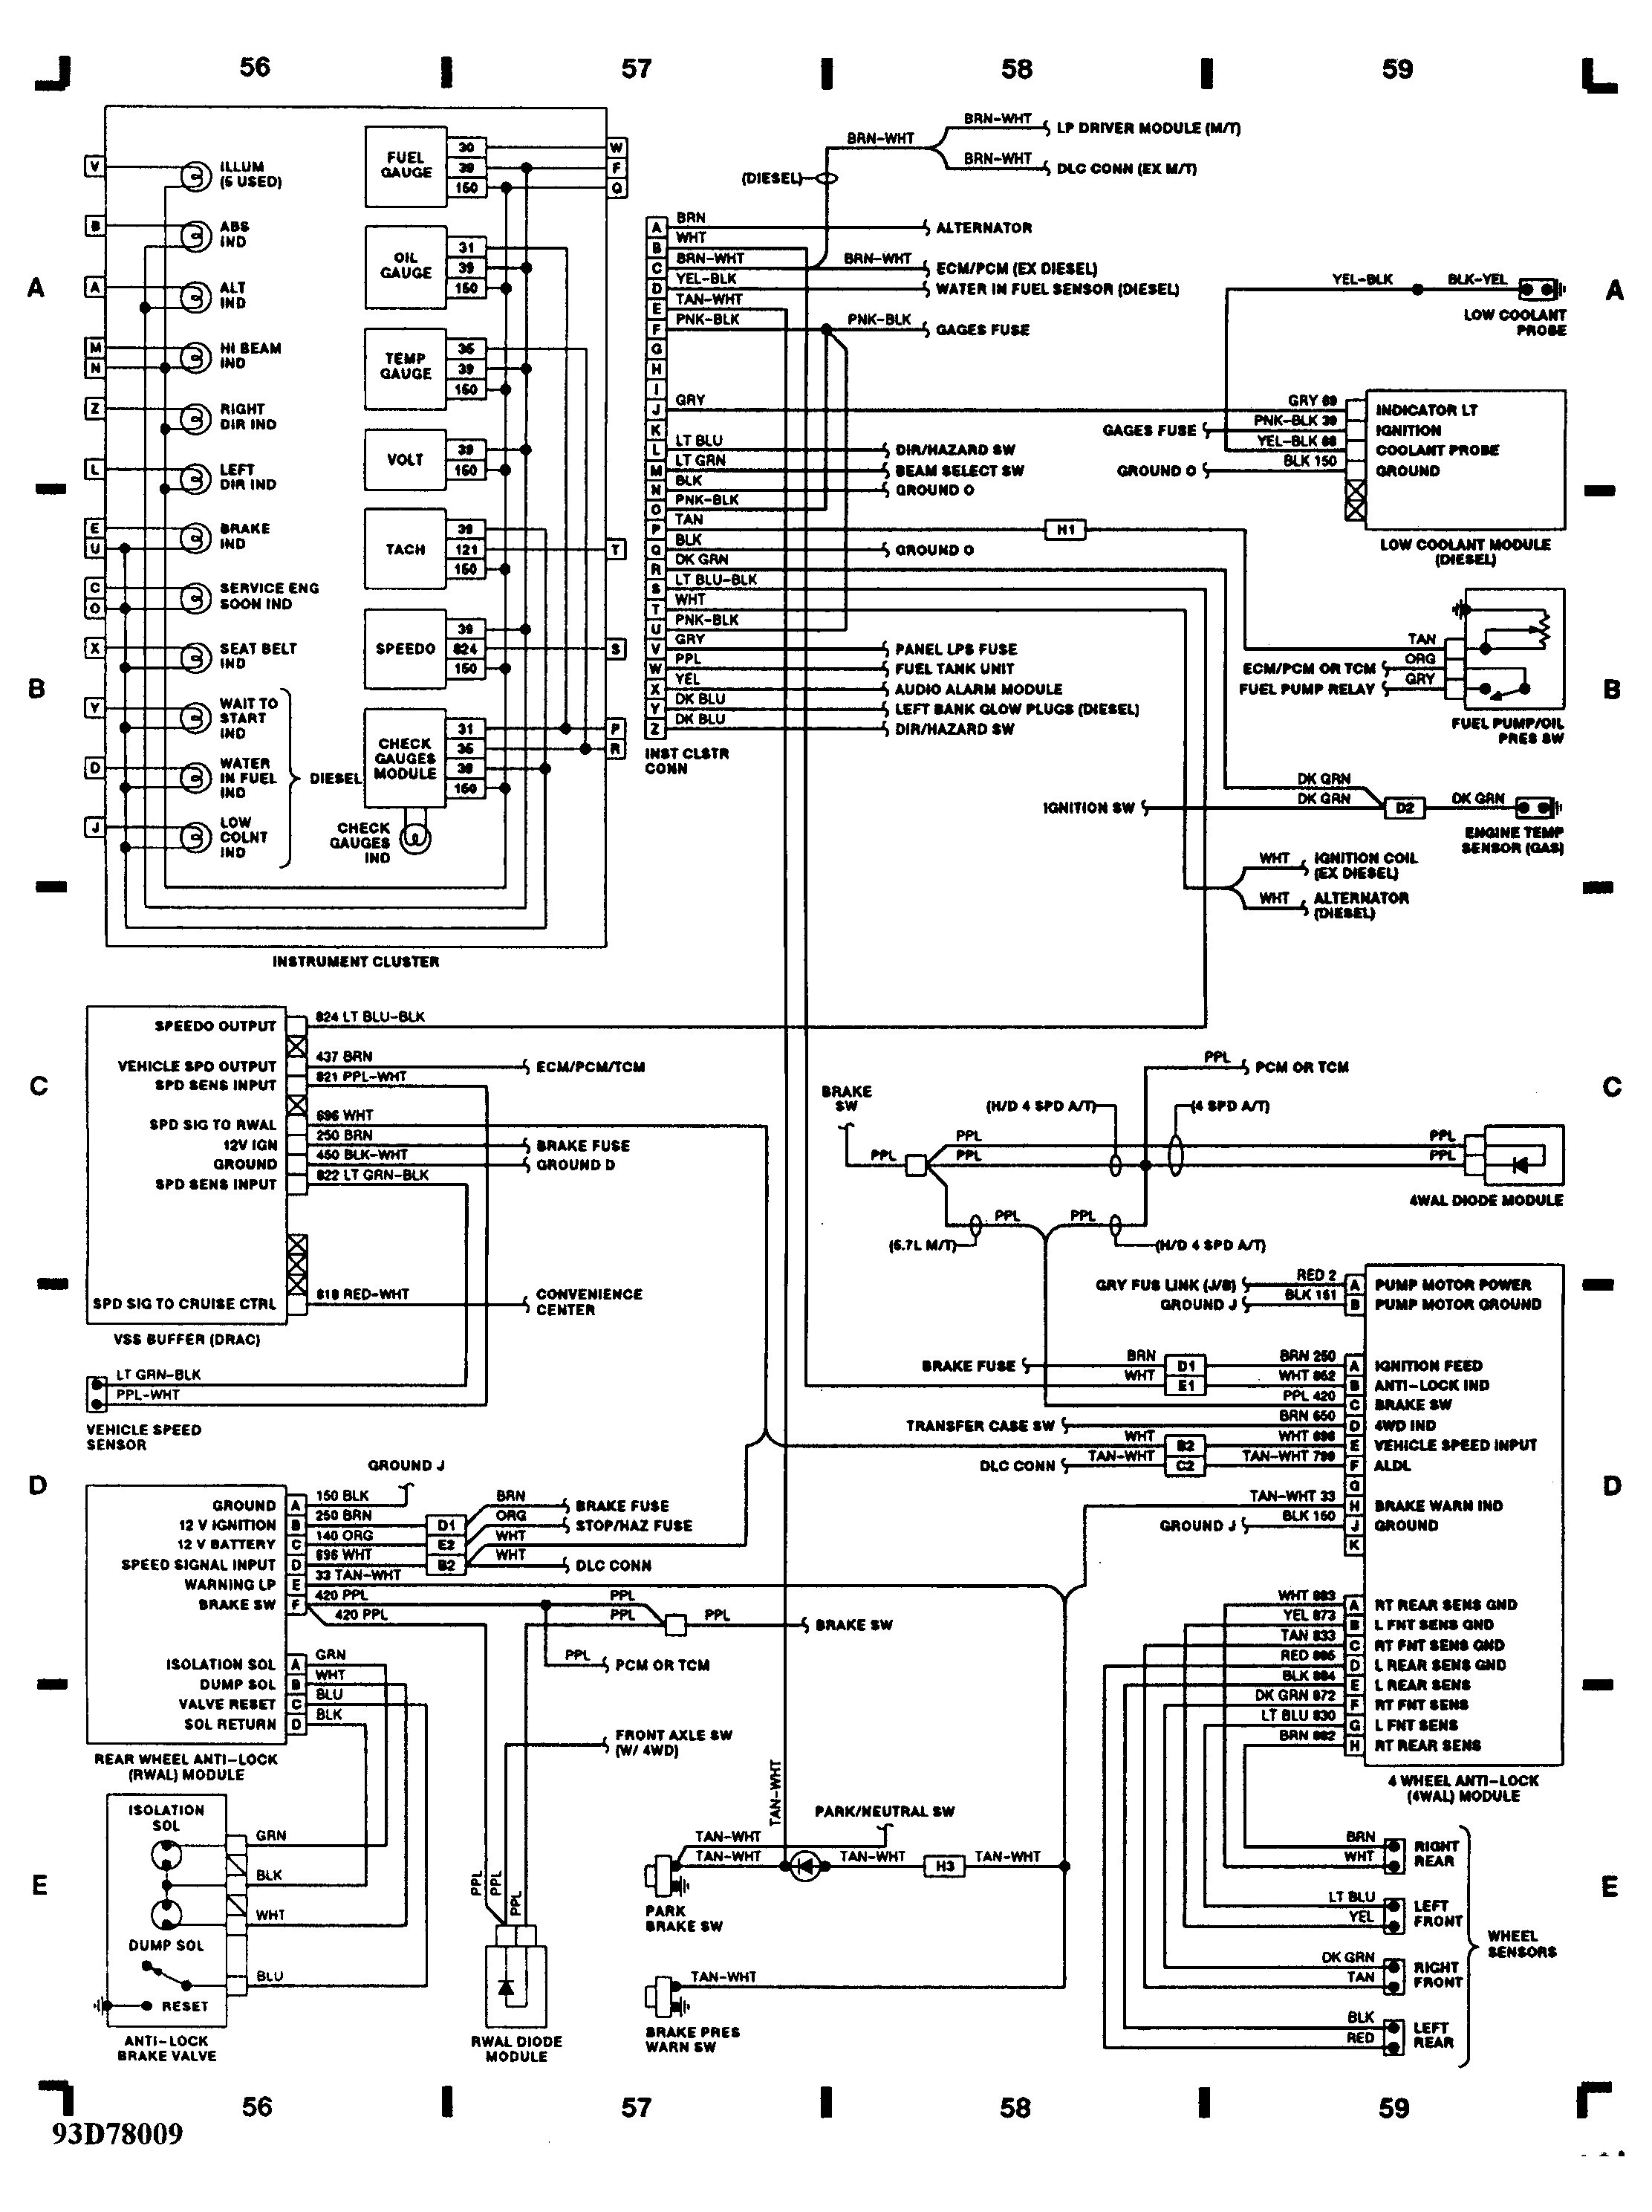 86 Chevy Truck Wiring Diagram All Generation Schematics Nova Elegant 1993 Silverado Of